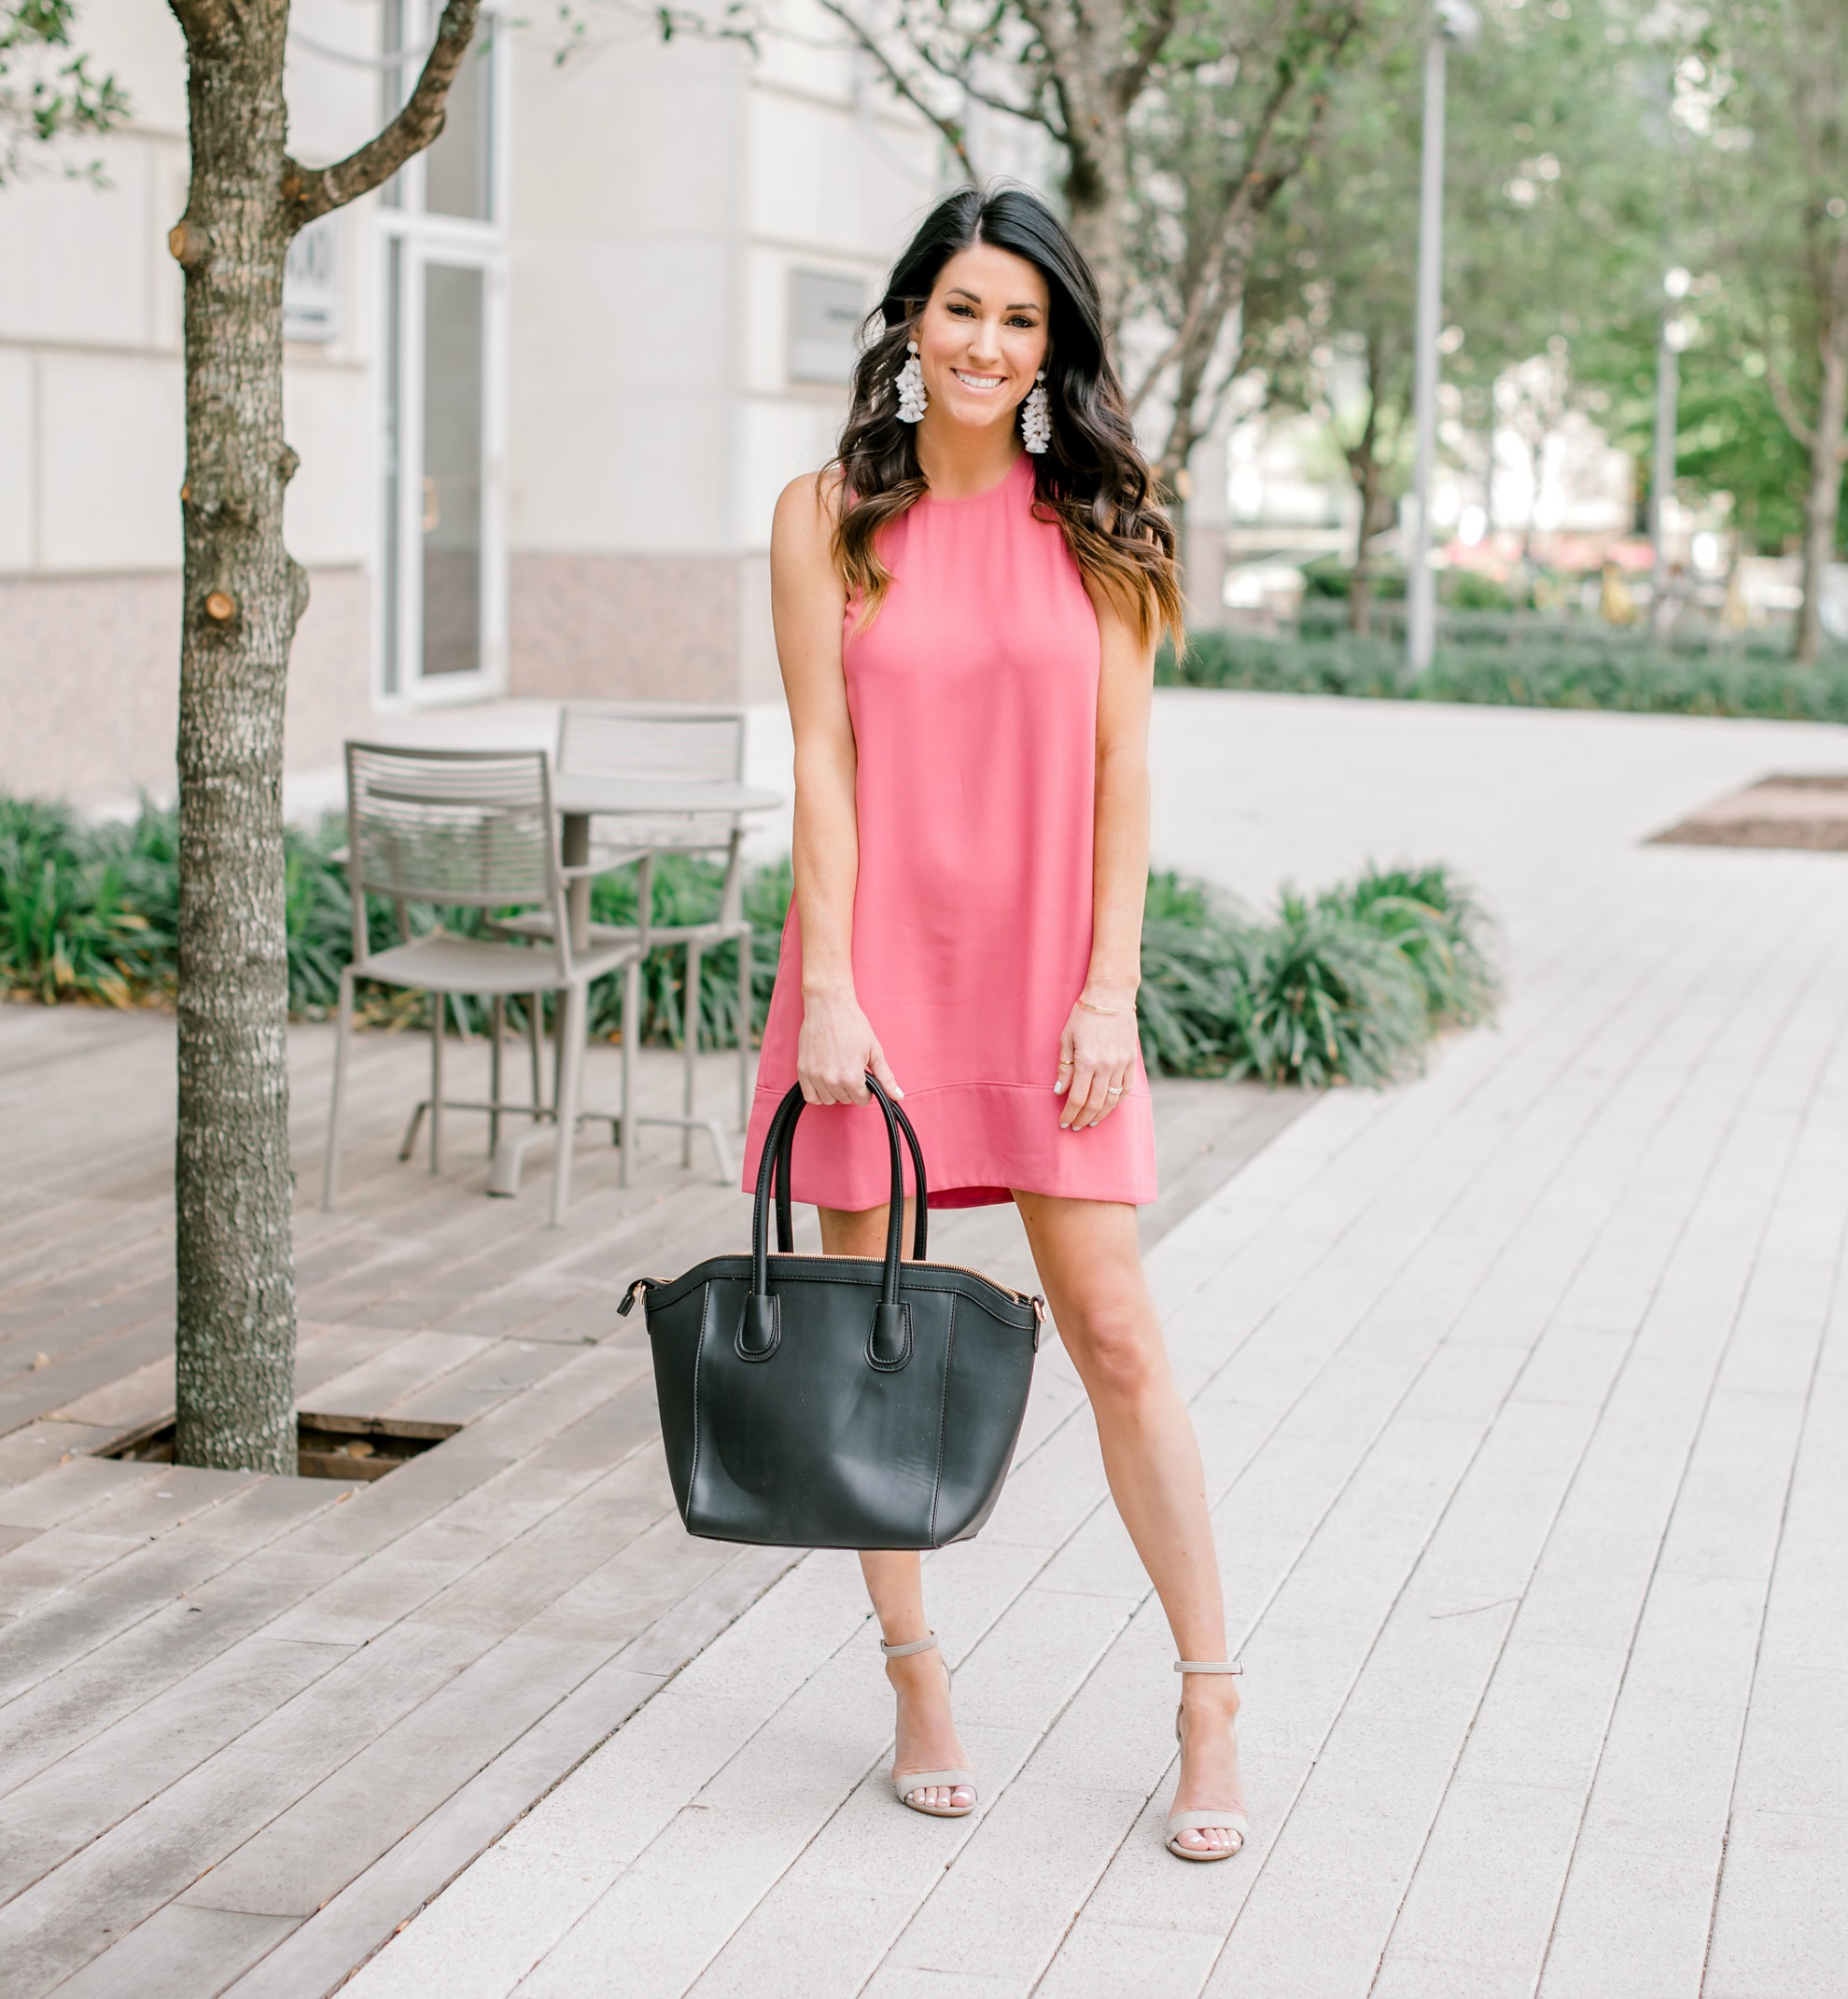 Shift Dress, date night outfit